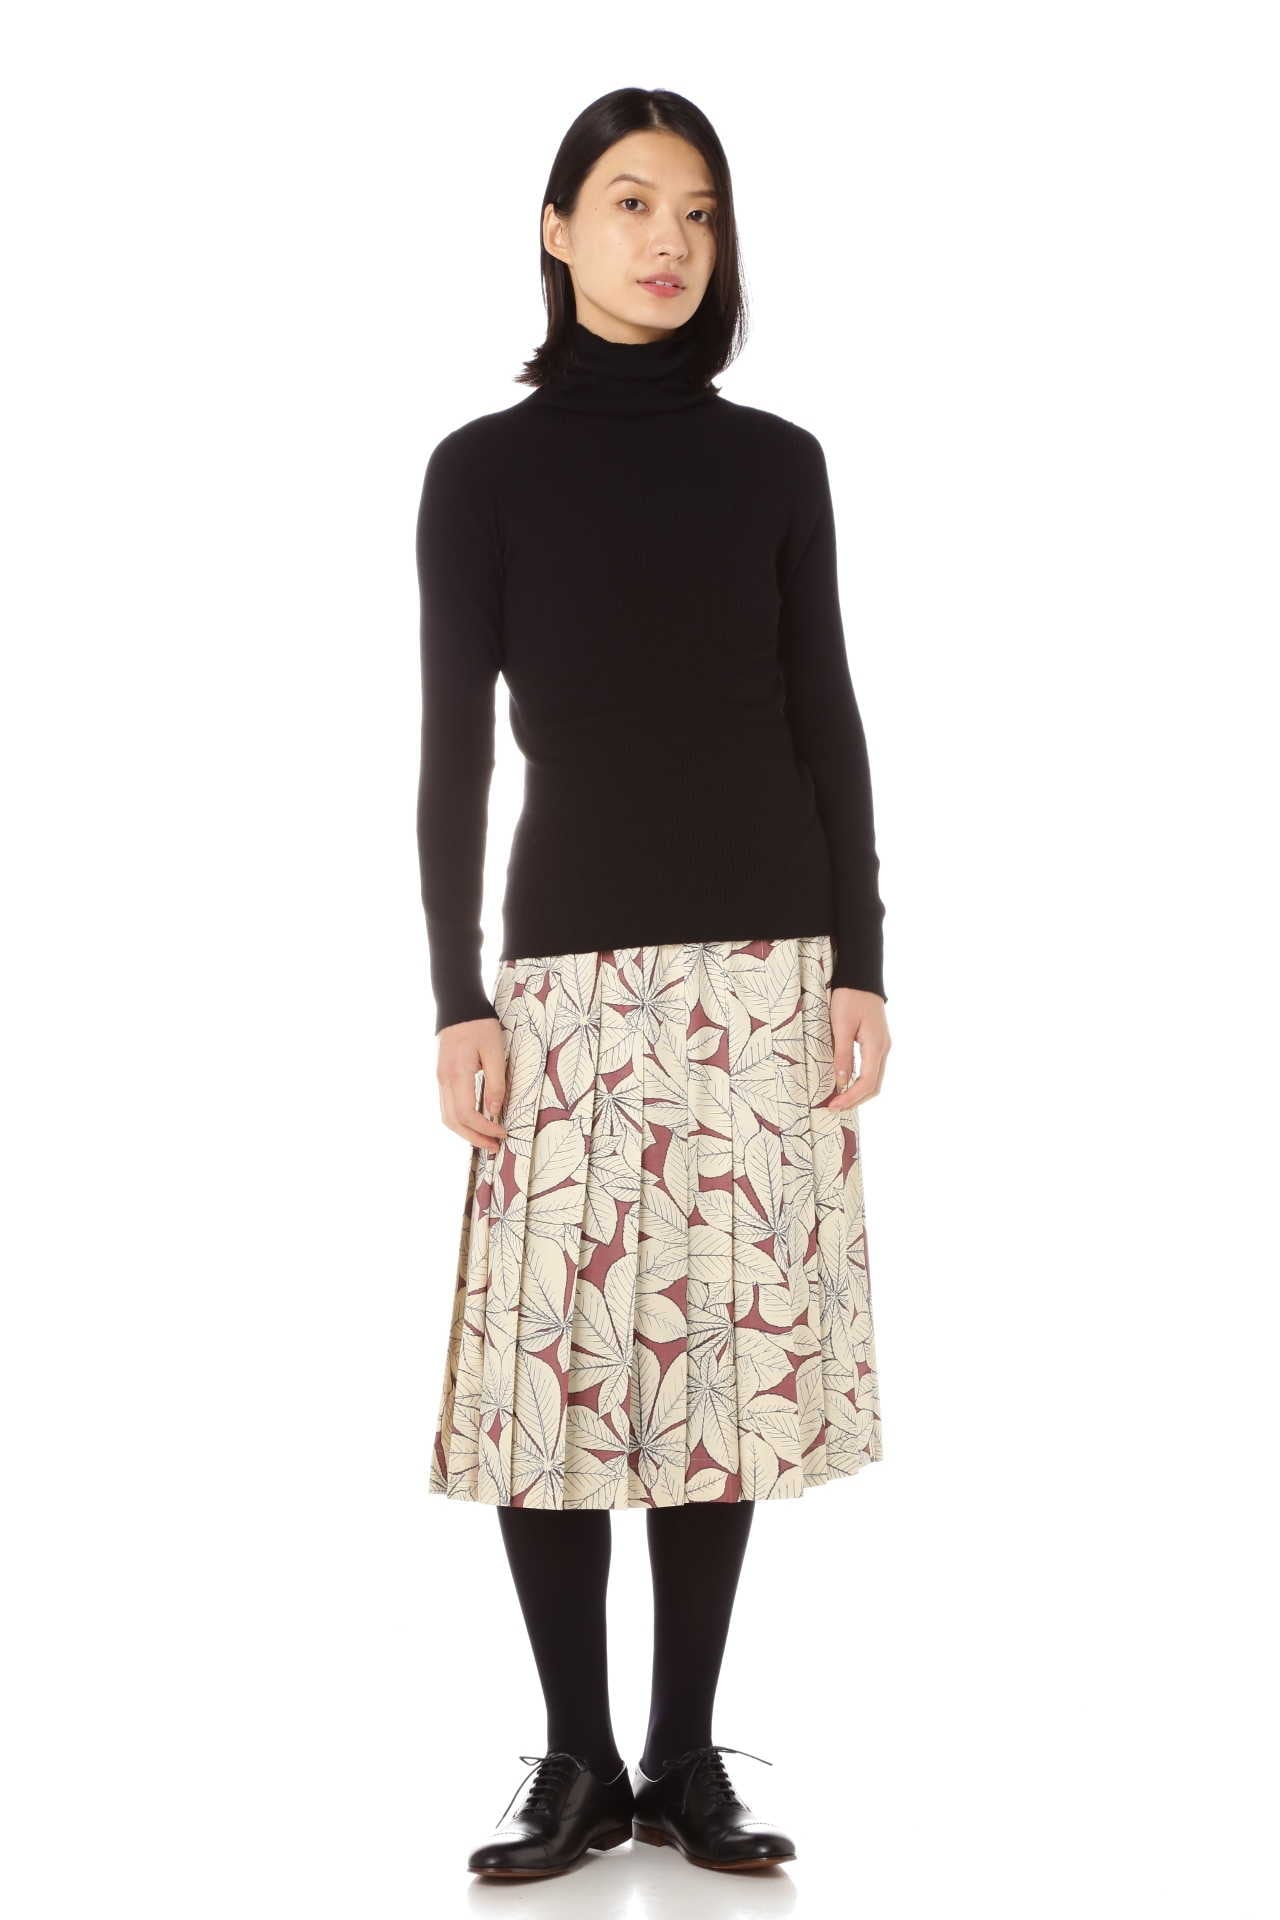 FINE RIB TURTLENECK8